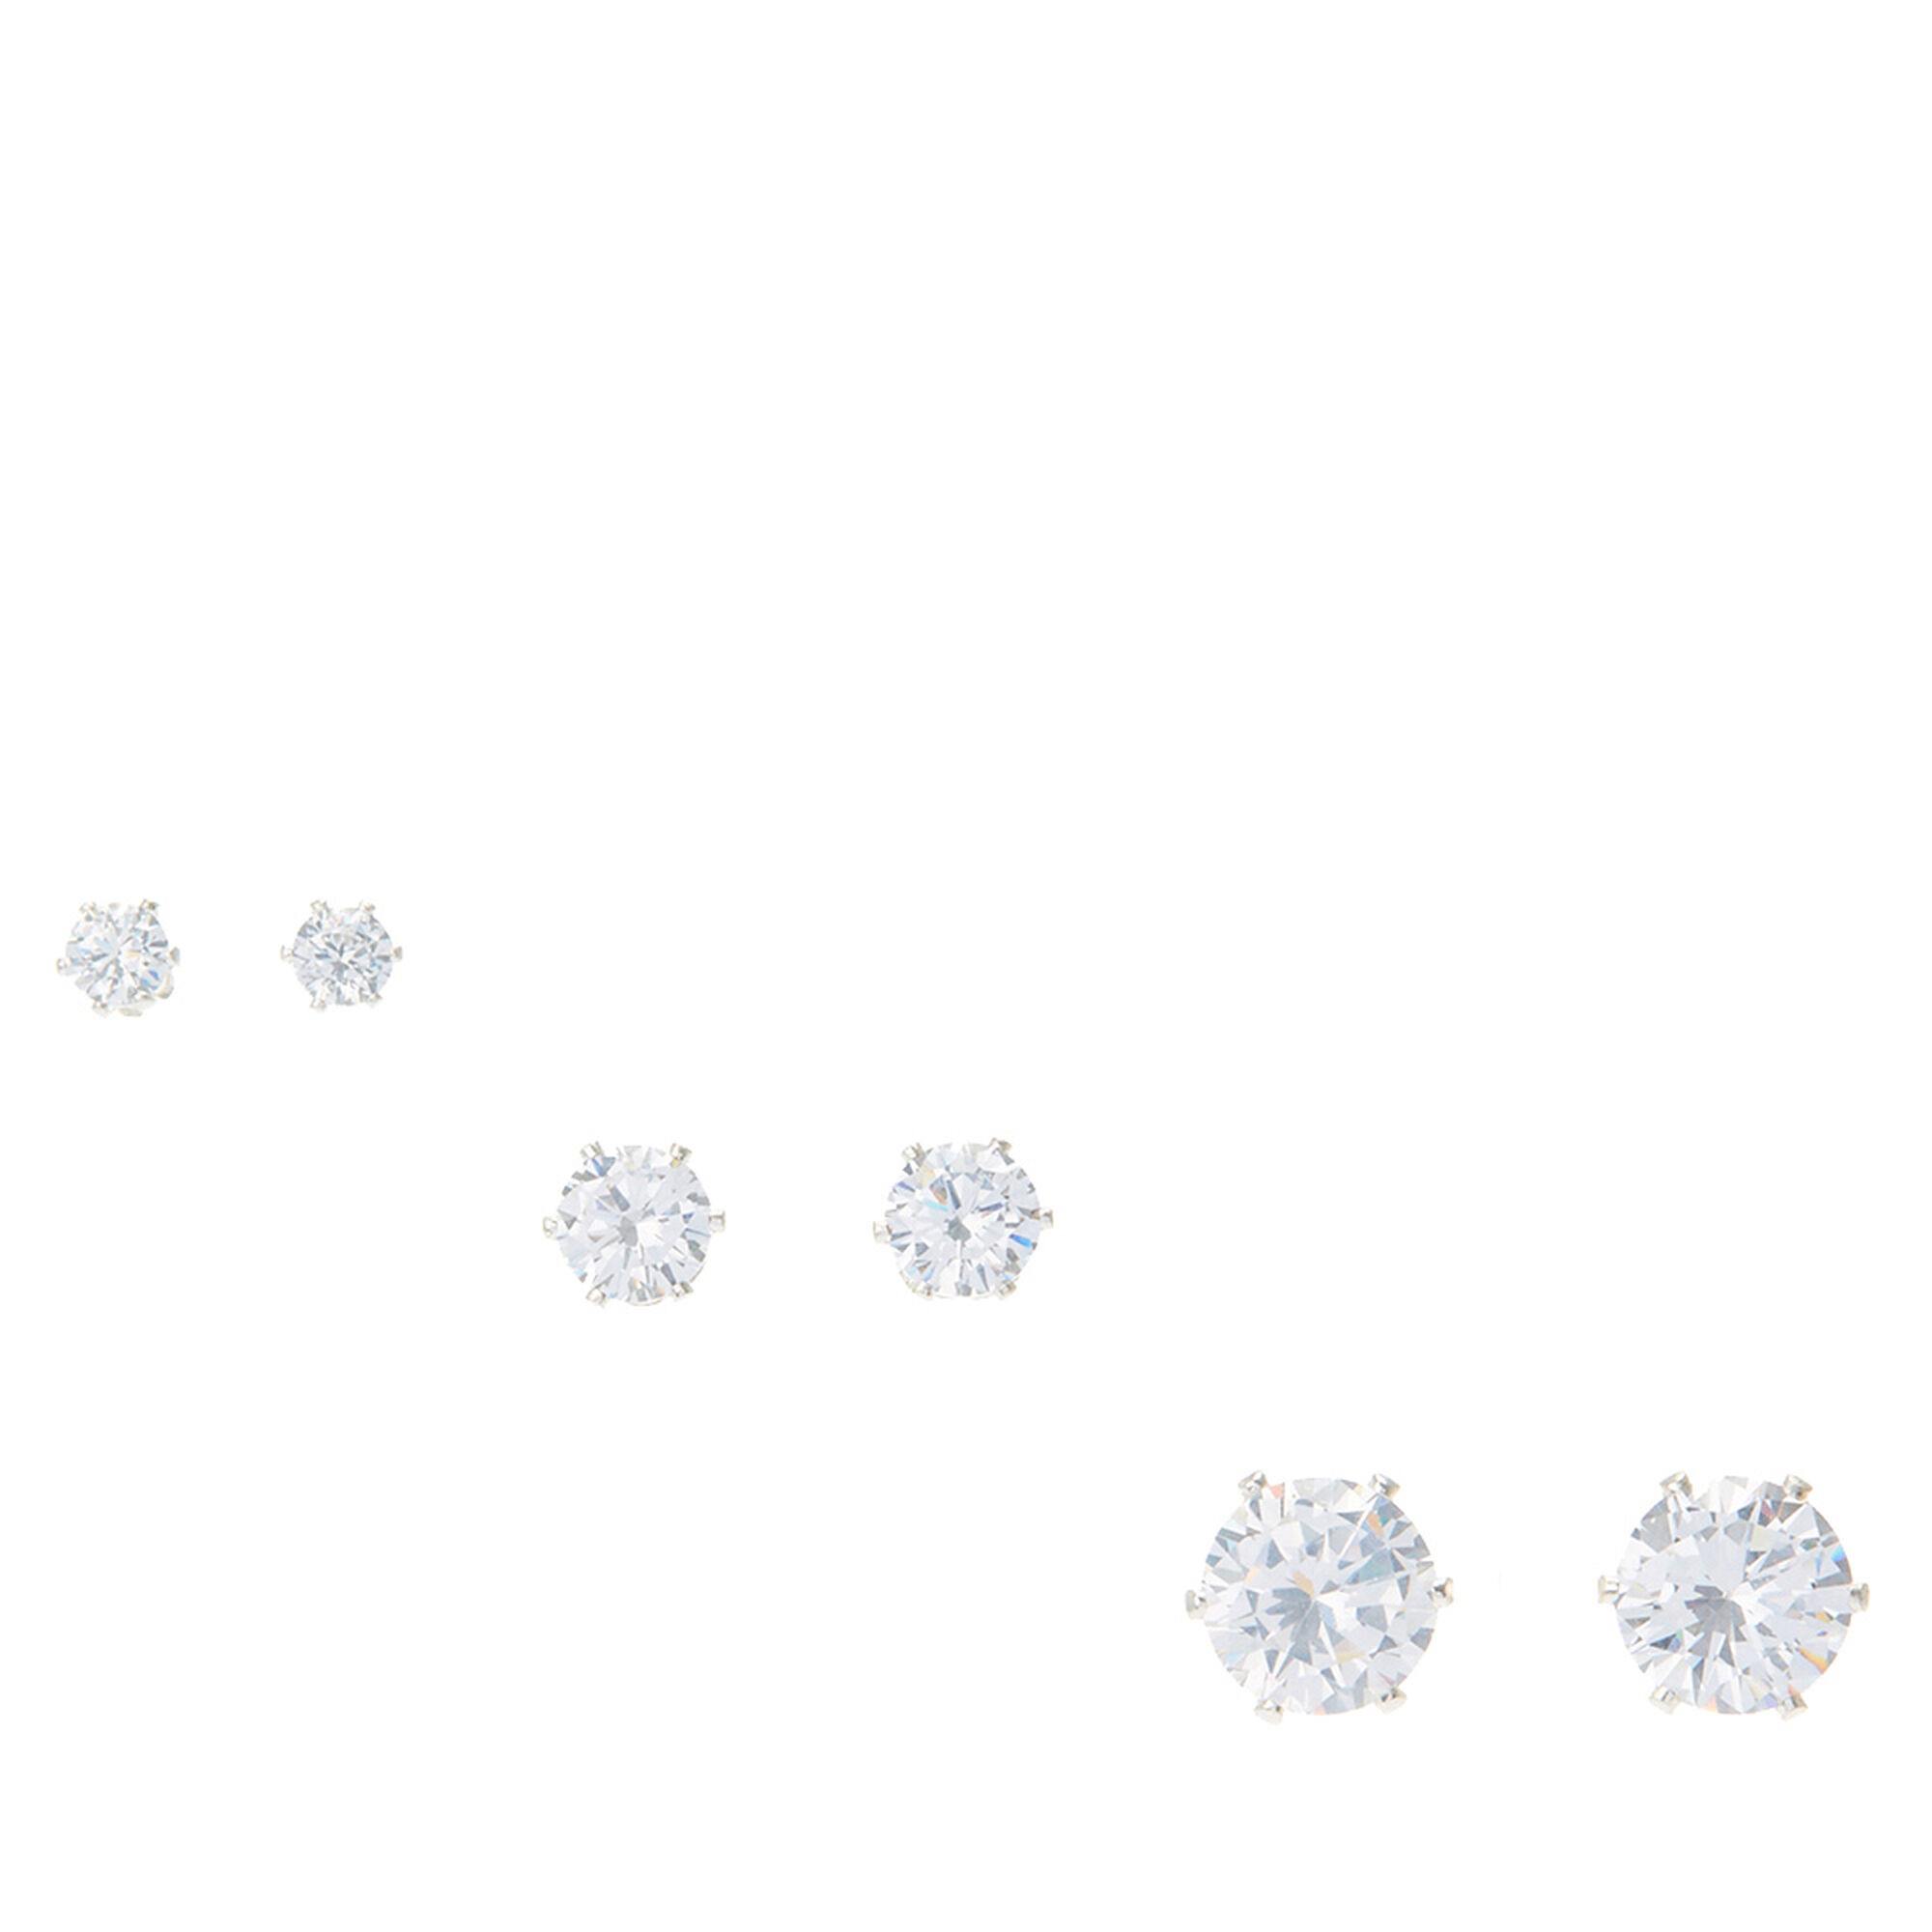 jewellery franki baker products sterling topaz earrings silver white stud natural gemstones